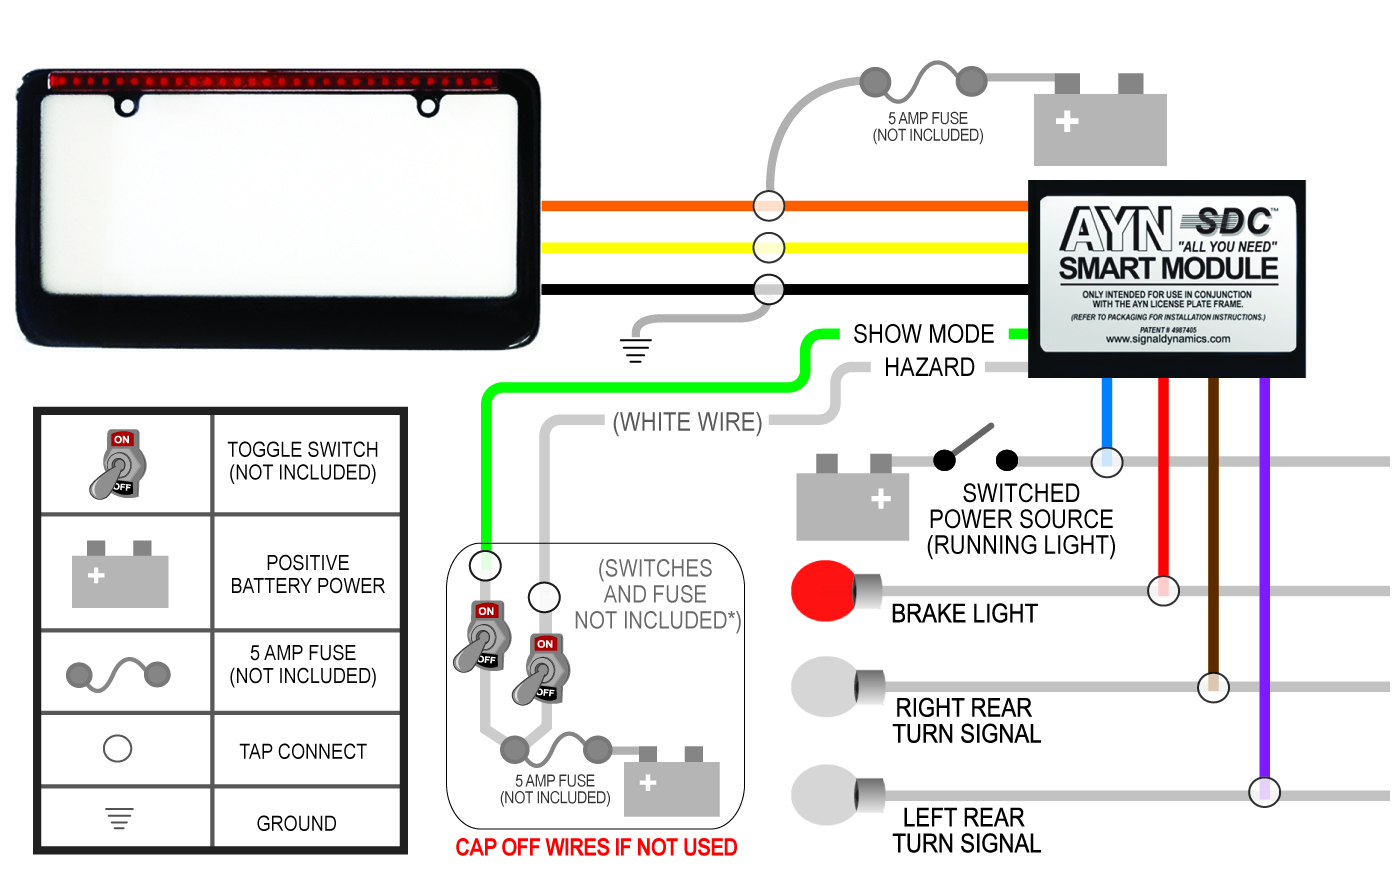 black auto wiring diagram?t=1399476781 black ayn automotive license plate frame & smart module combo Basic Turn Signal Wiring Diagram at cos-gaming.co